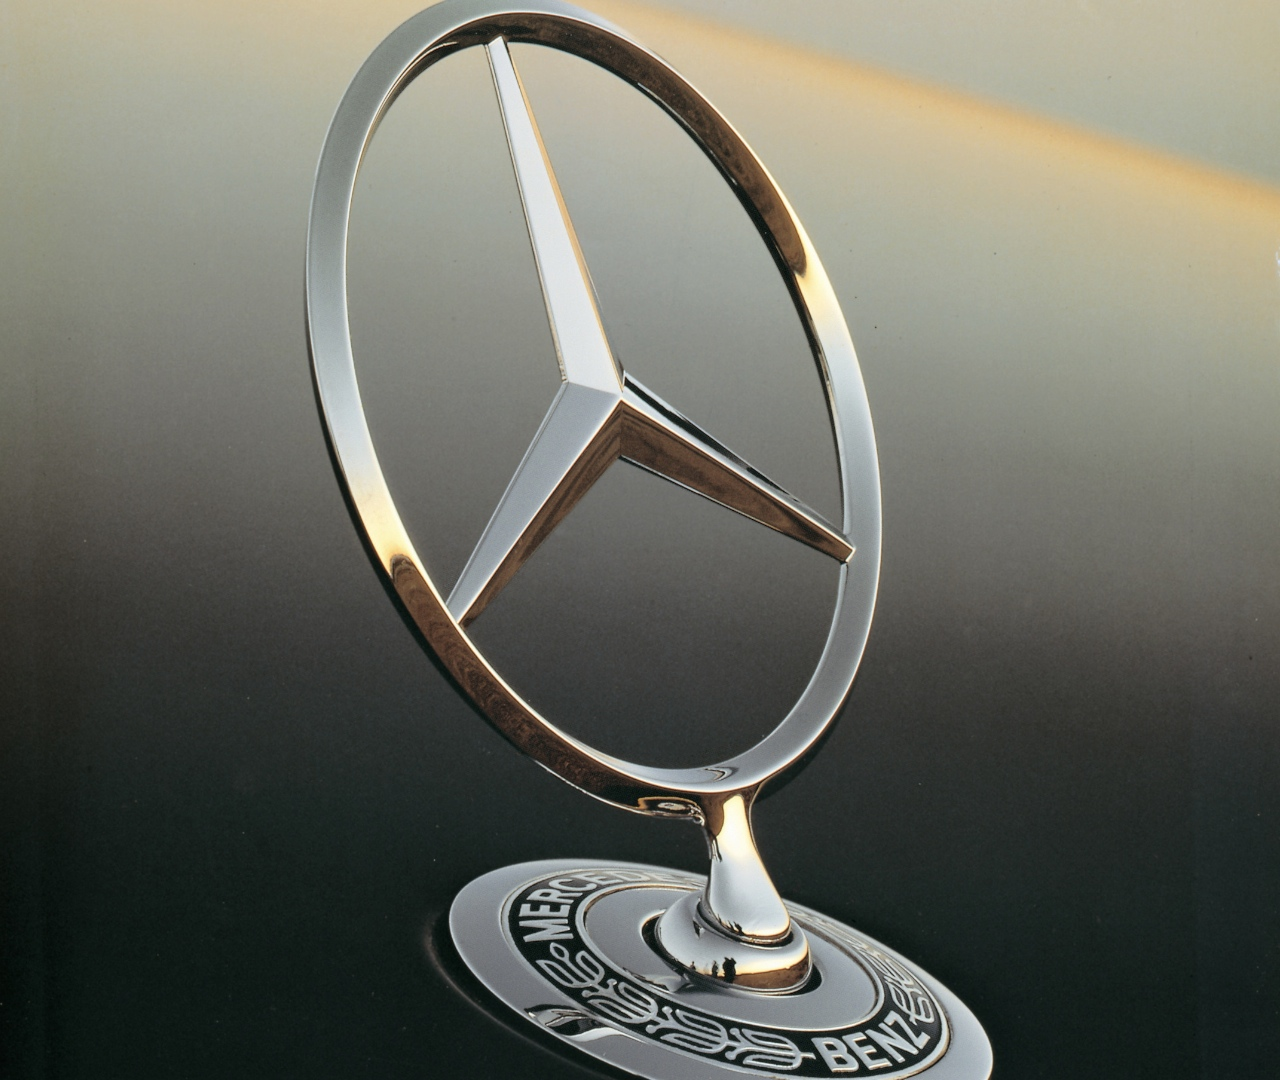 Mercedes benz classic car prices on the rise autoevolution for Mercedes benz badges for sale